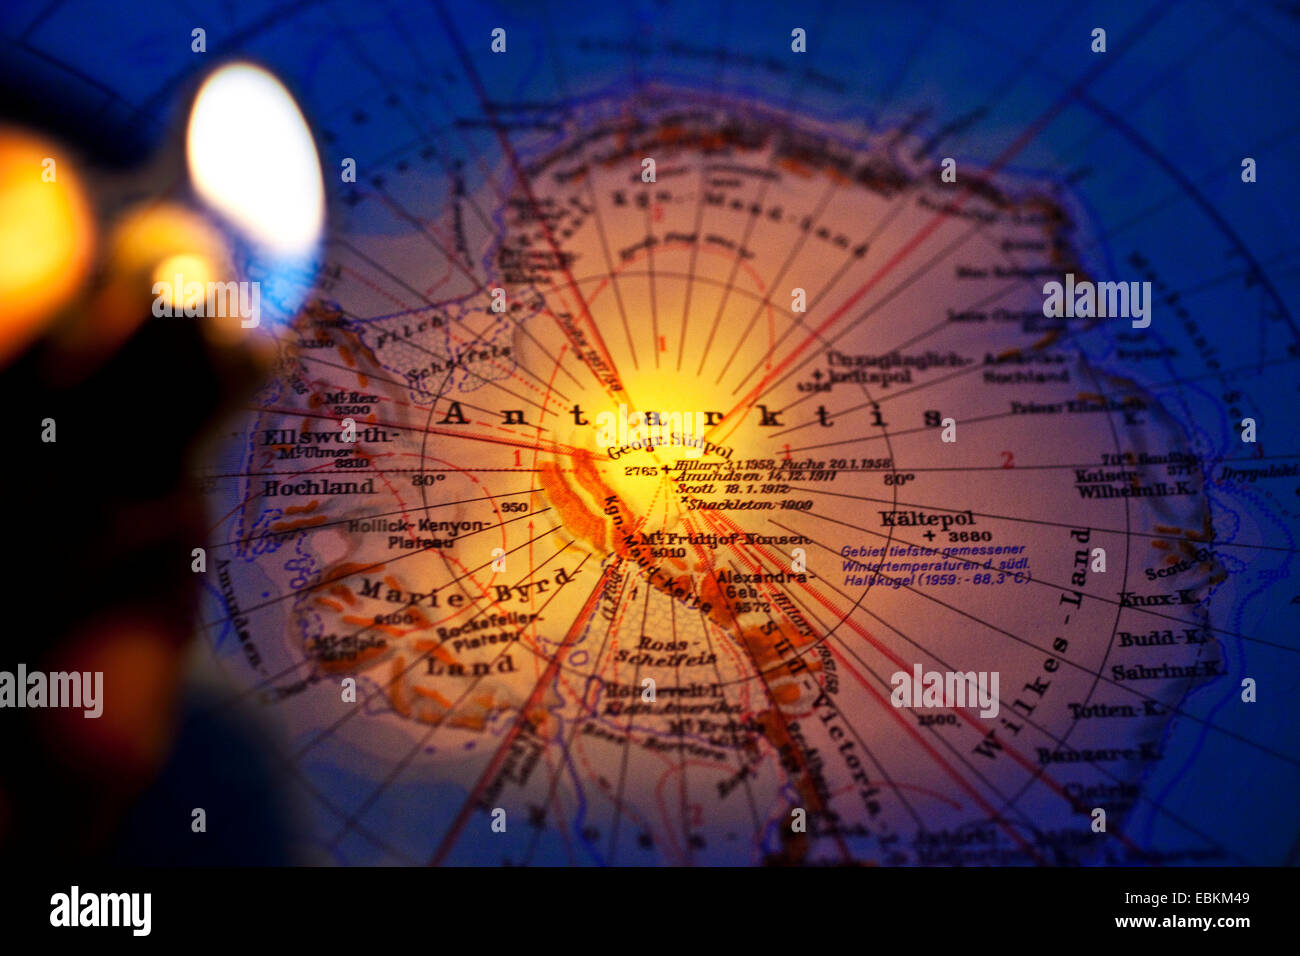 burning lighter above map of the Antarctic, symbol for global warming - Stock Image